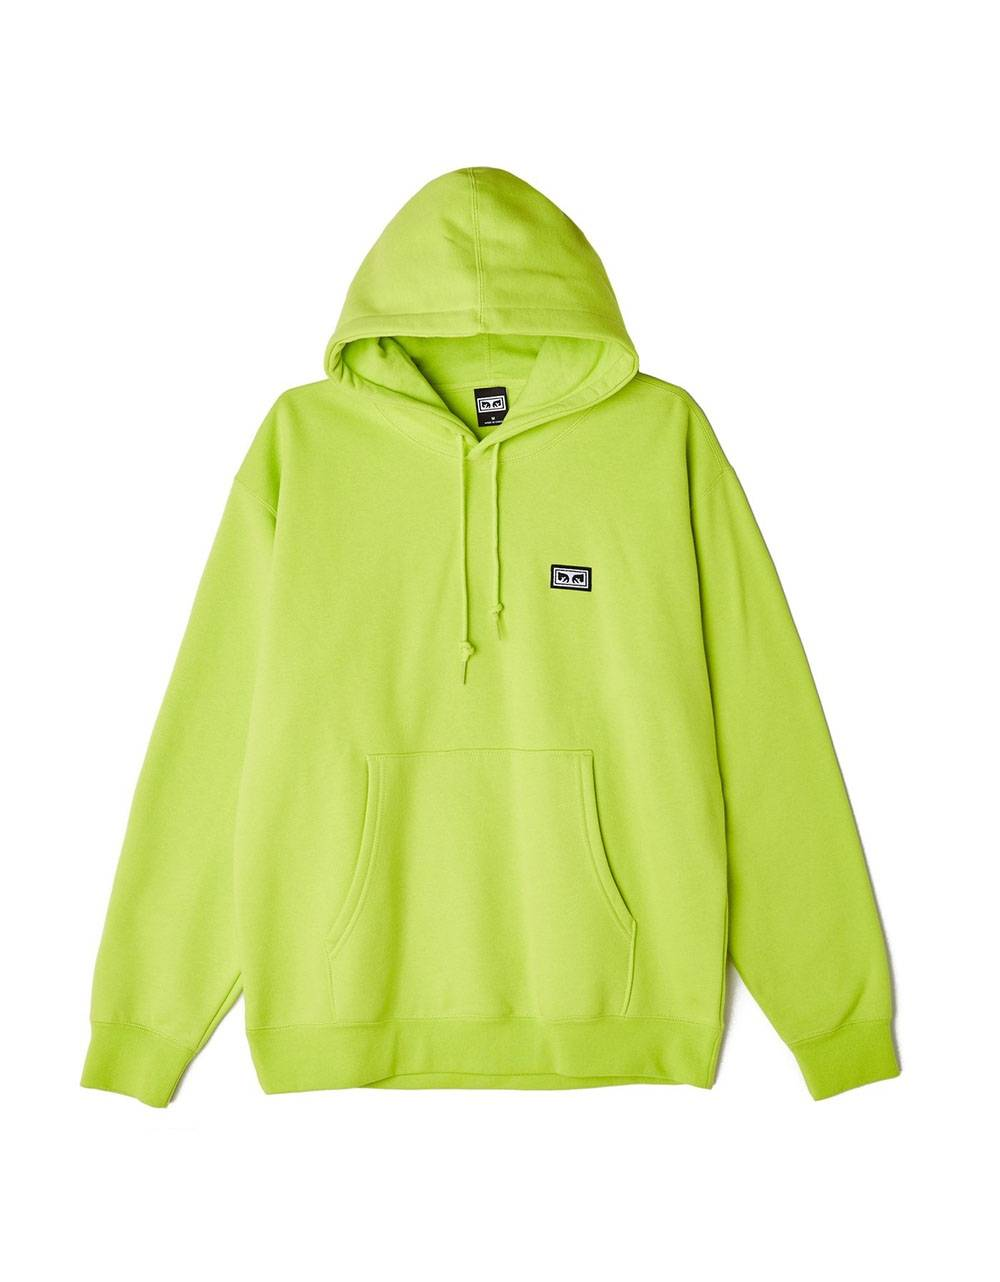 Obey All eyes II hoodie essential fleece - lime obey Sweater 78,69 €